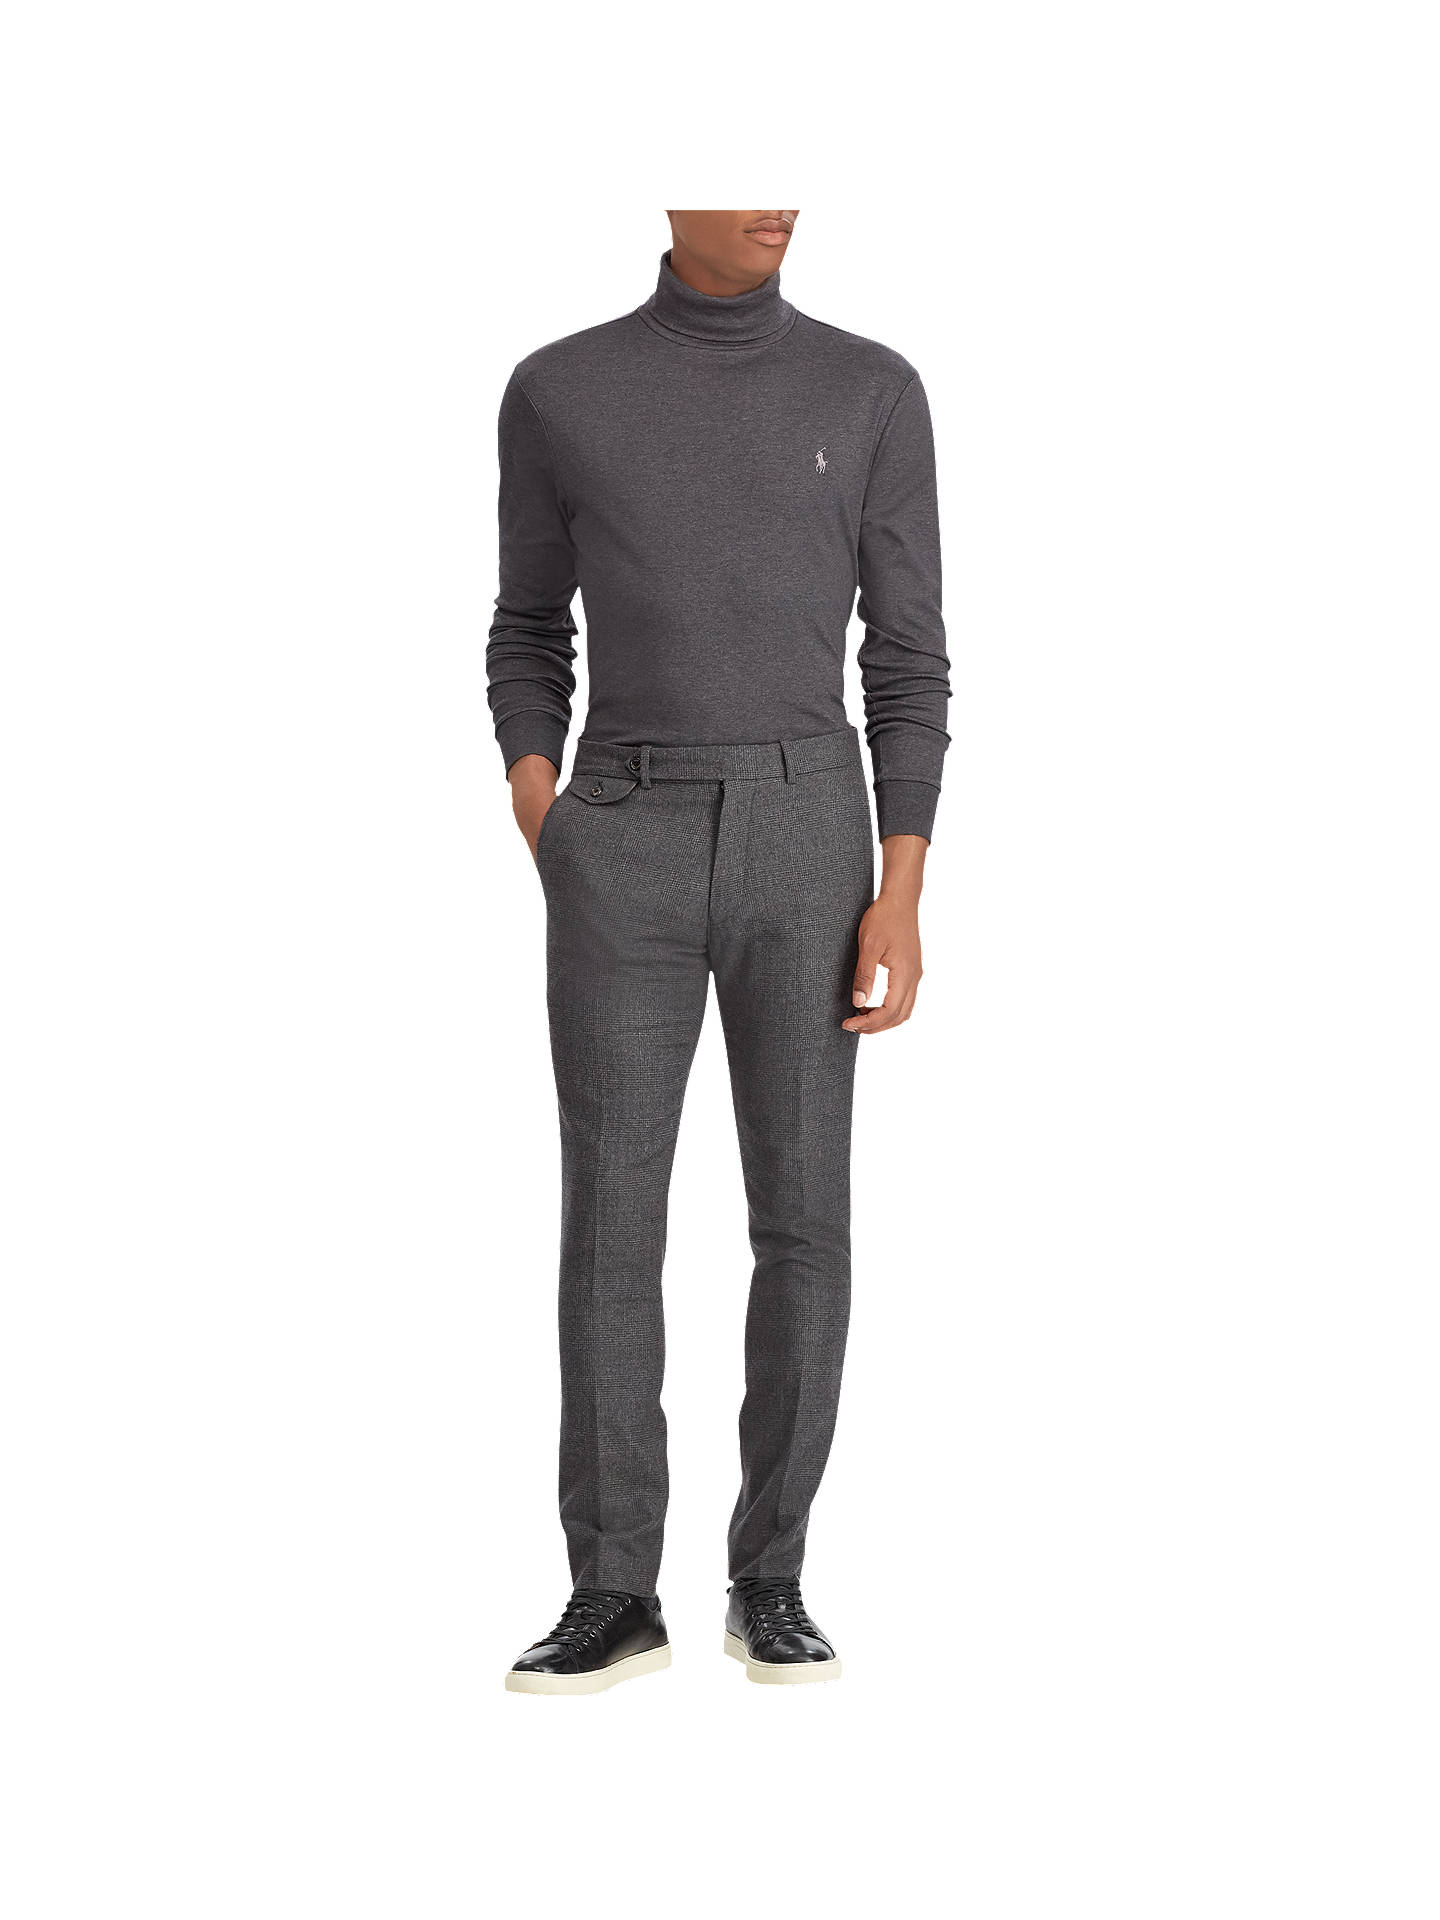 BuyPolo Ralph Lauren Pima Turtle Neck Jumper, Dark Grey Heather, XL Online at johnlewis.com